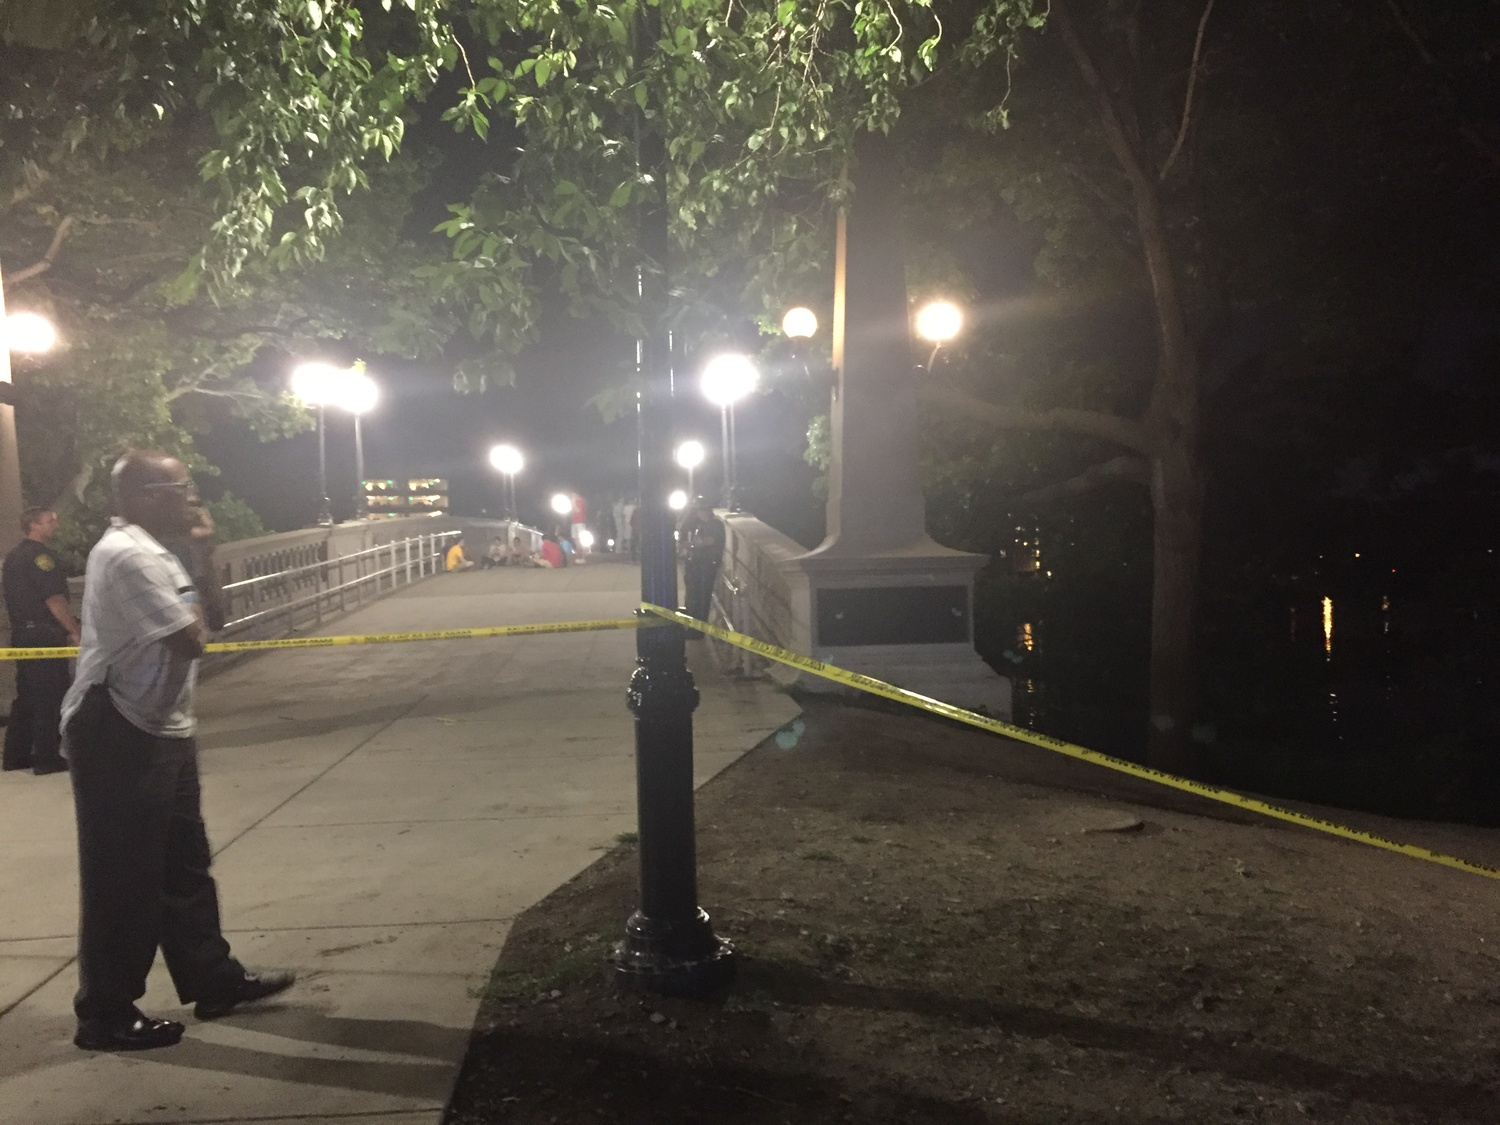 Police stood near Weeks Footbridge. A person was recovered from the Charles Friday night.